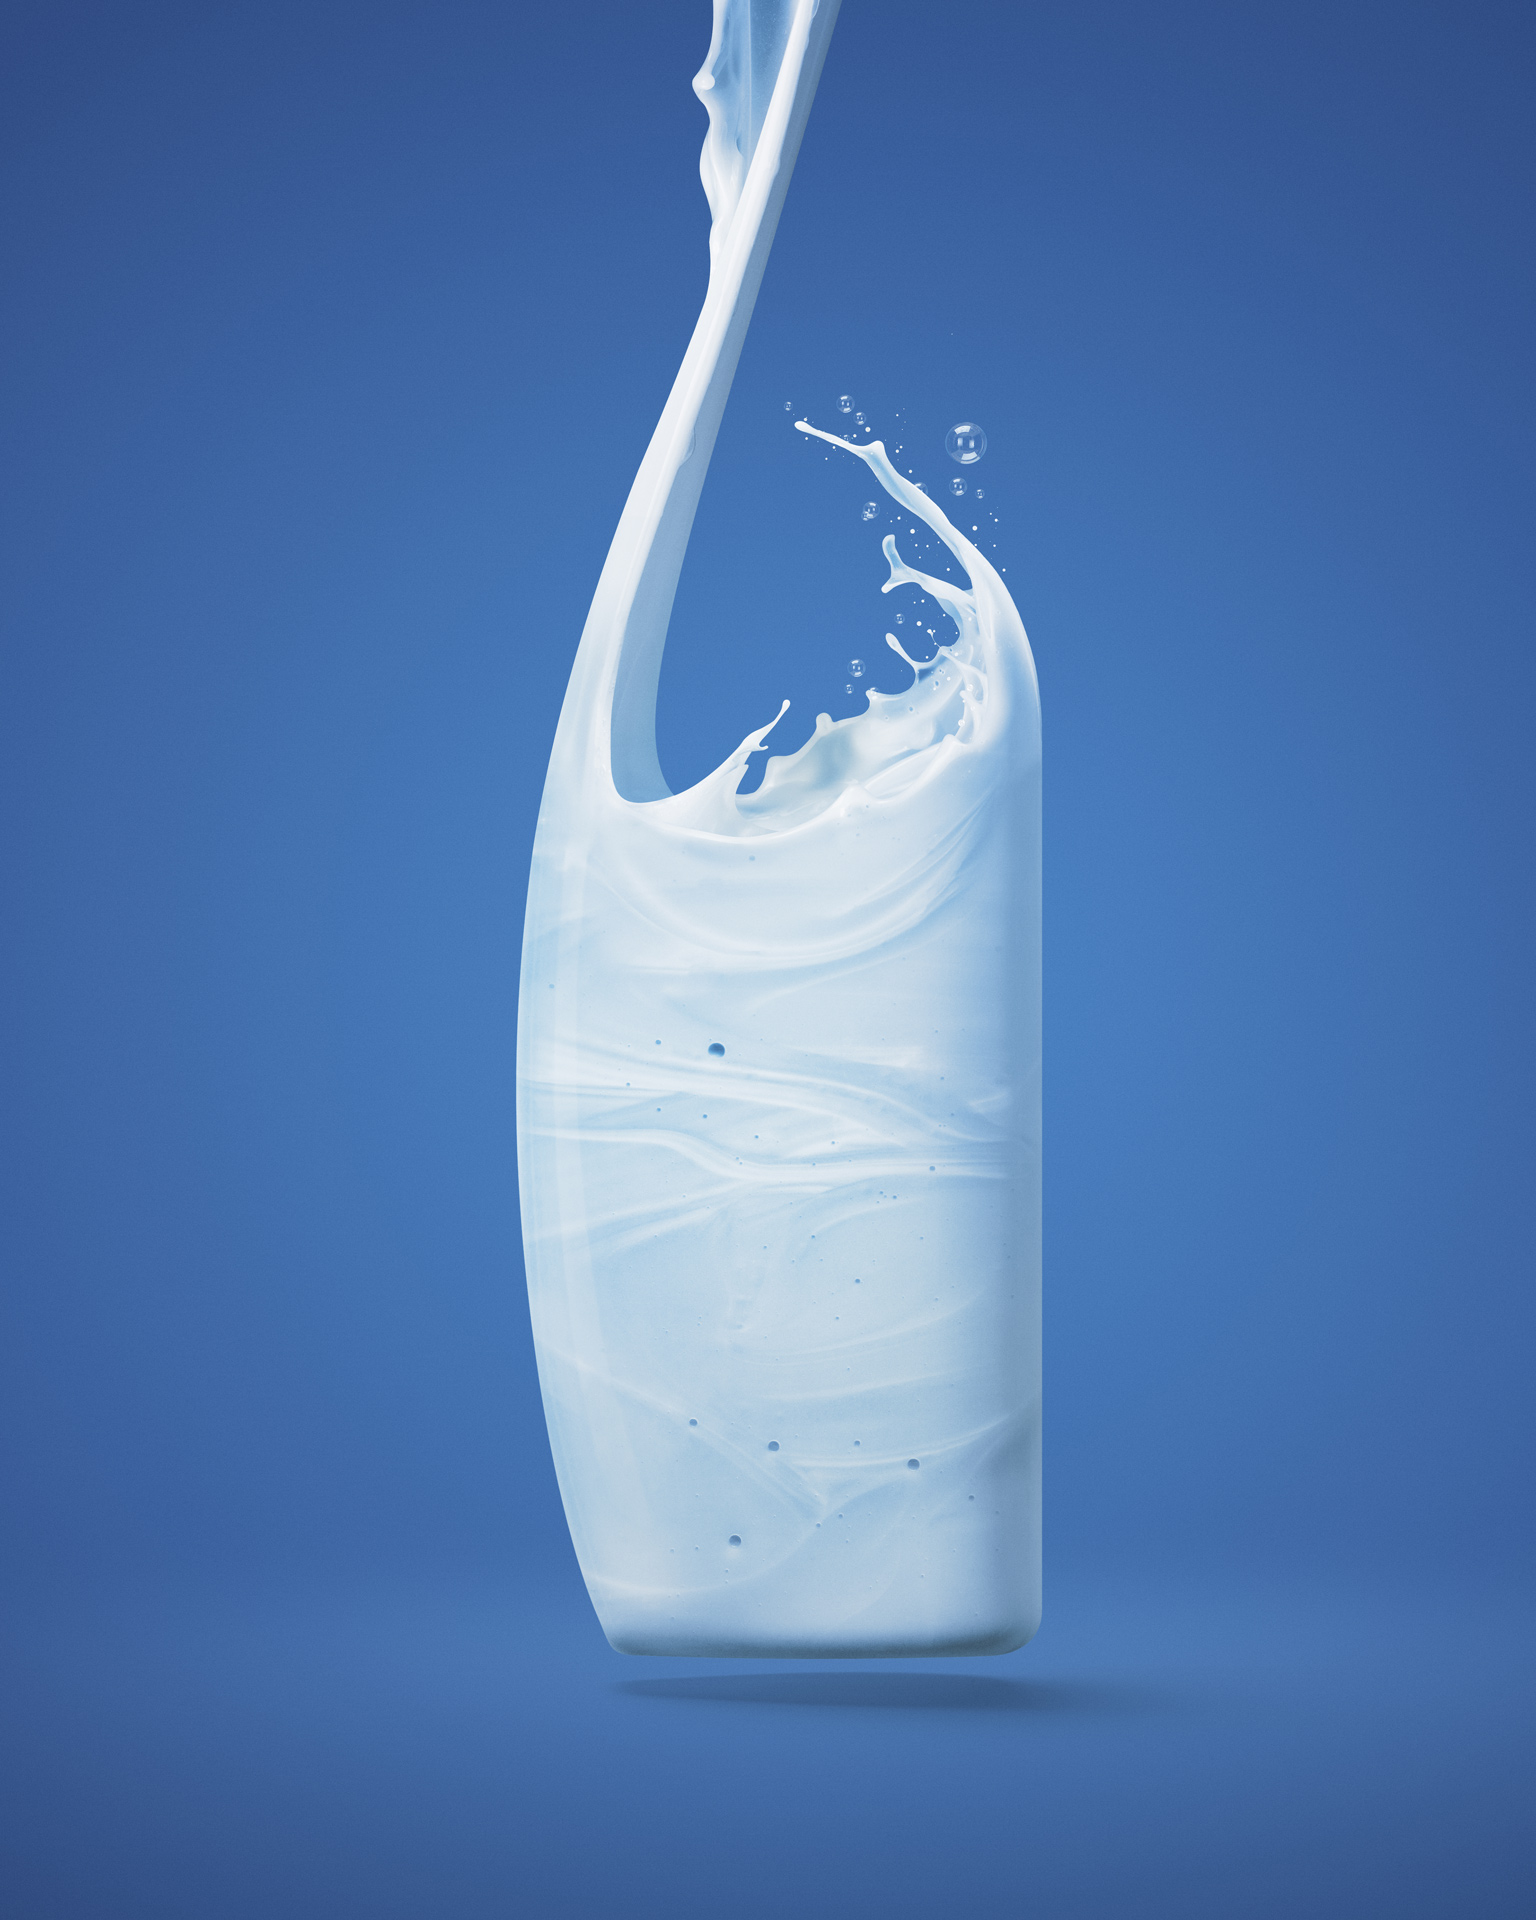 liquid shampoo falling from the sky into the shape of a bottle on blue background by Mathieu Levesque